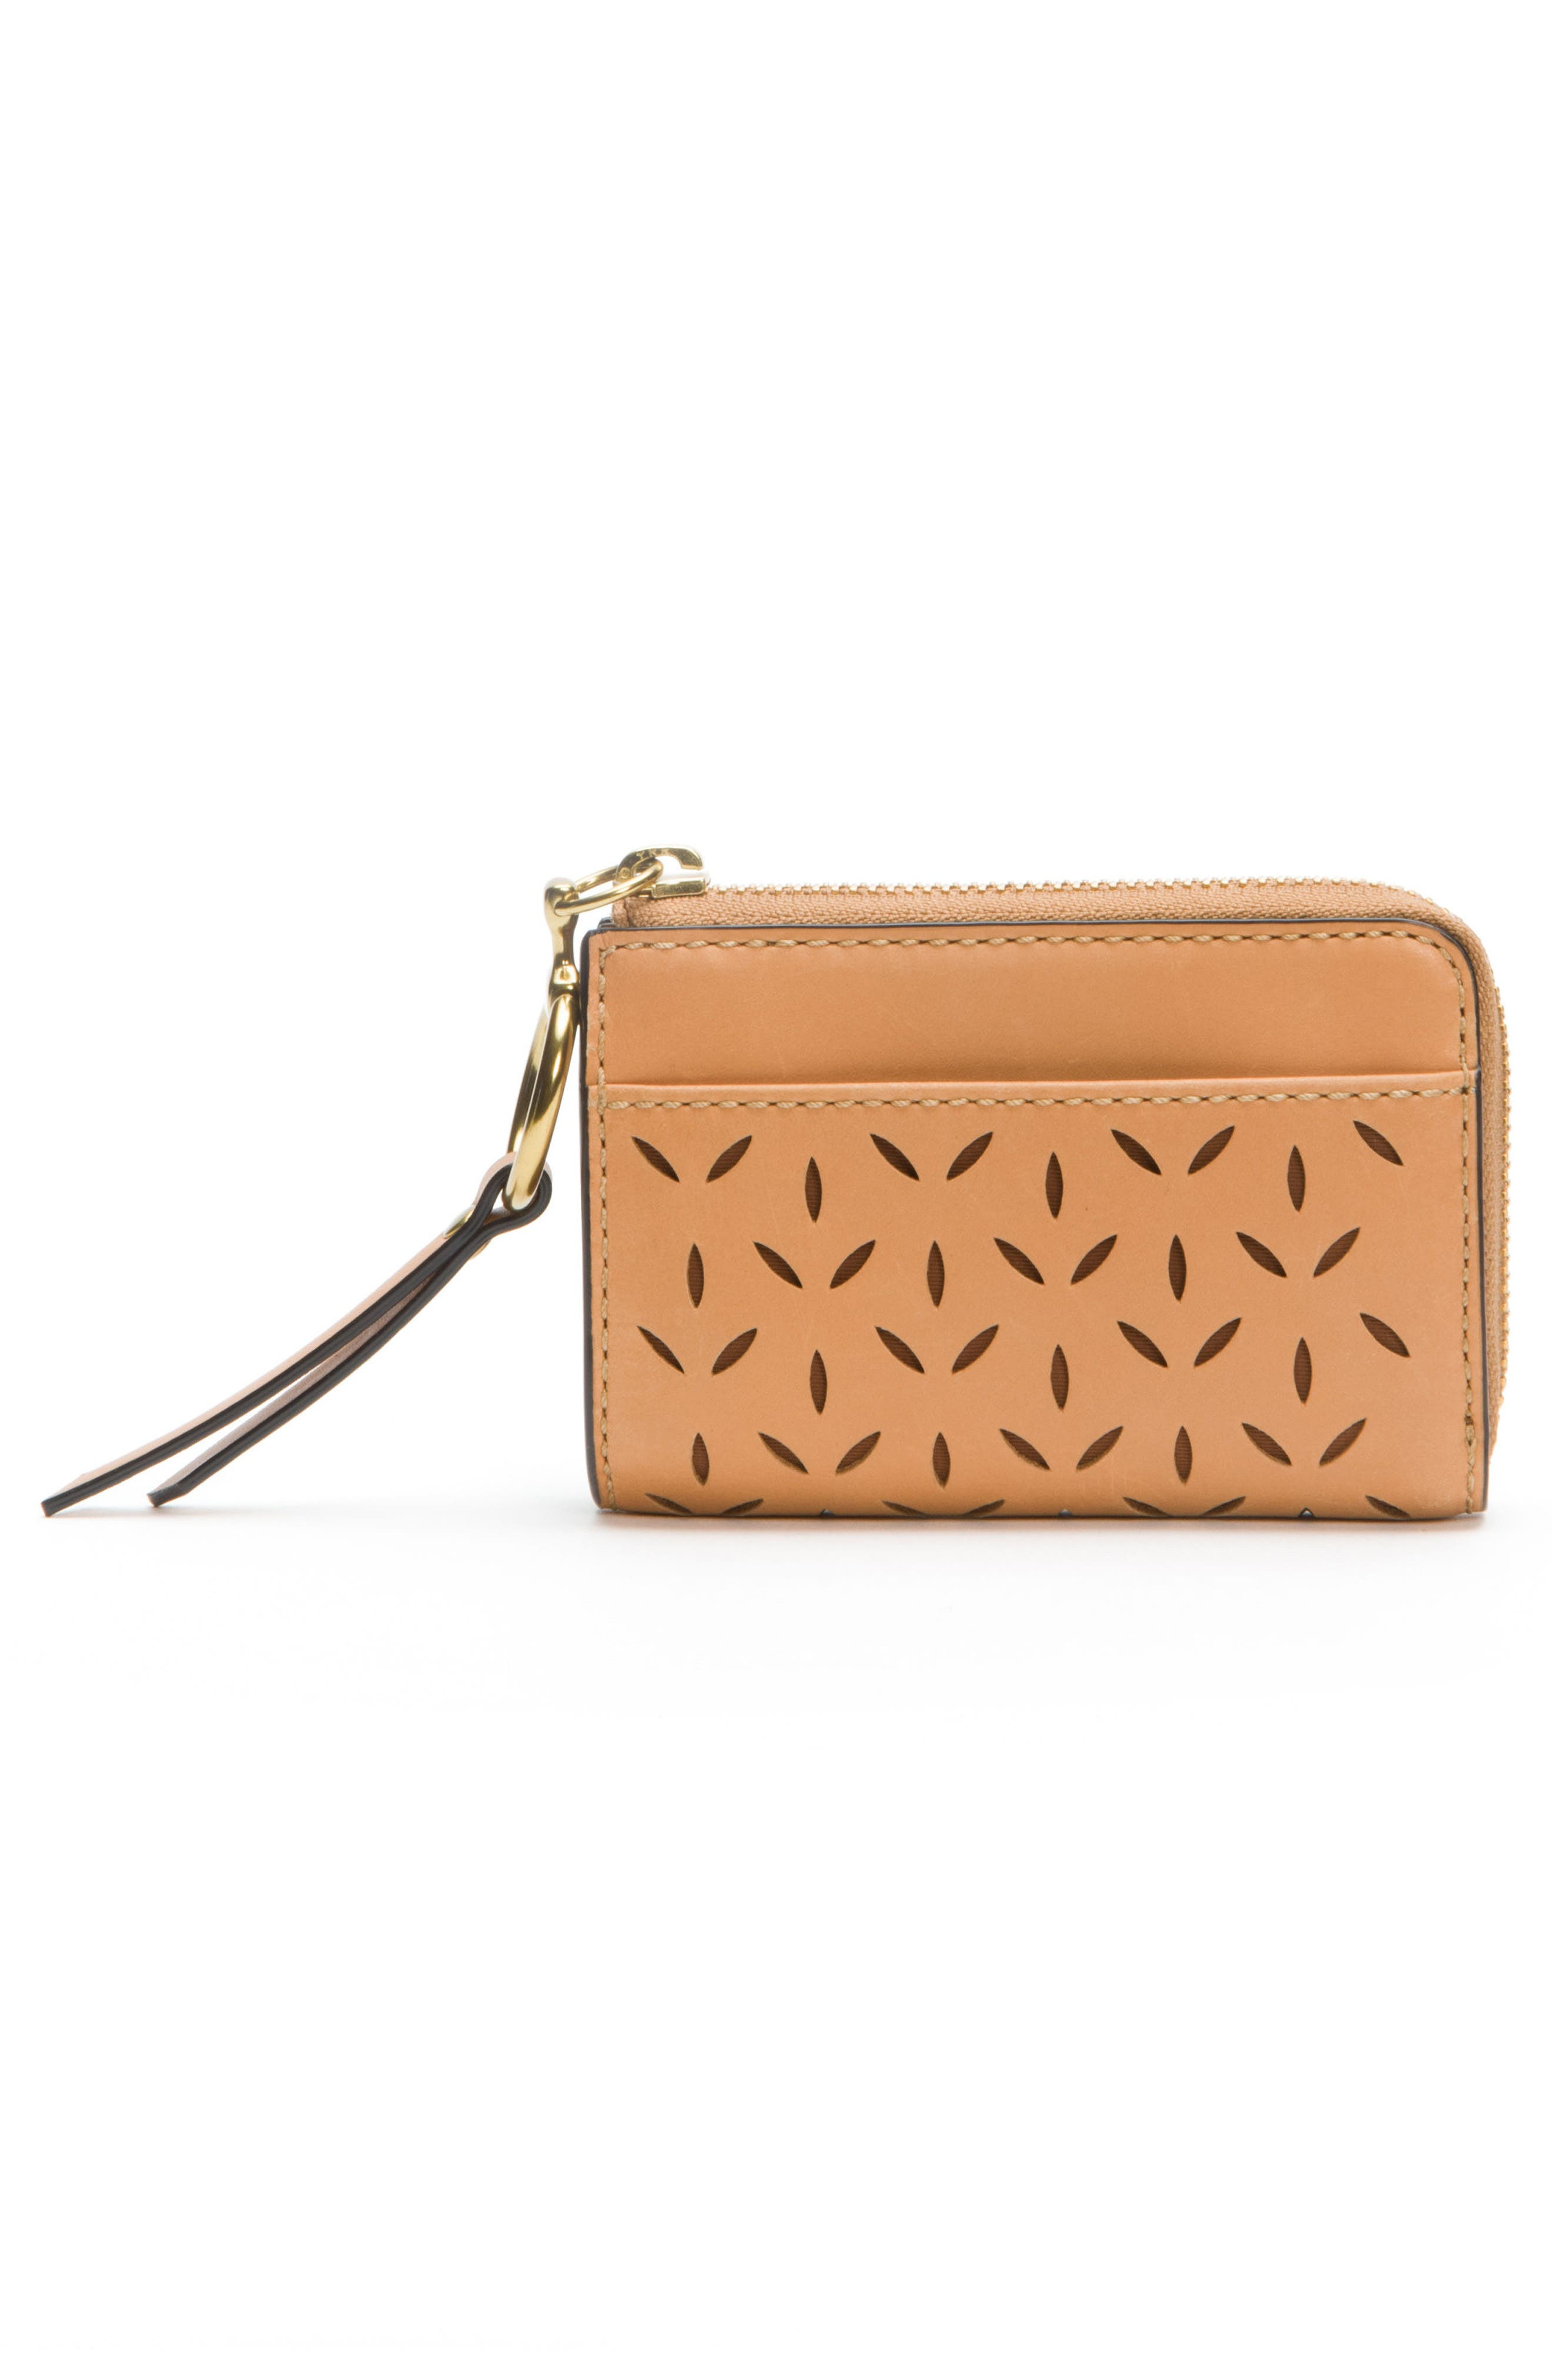 Ilana Small Perforated Leather Zip Wallet,                             Alternate thumbnail 4, color,                             Light Tan